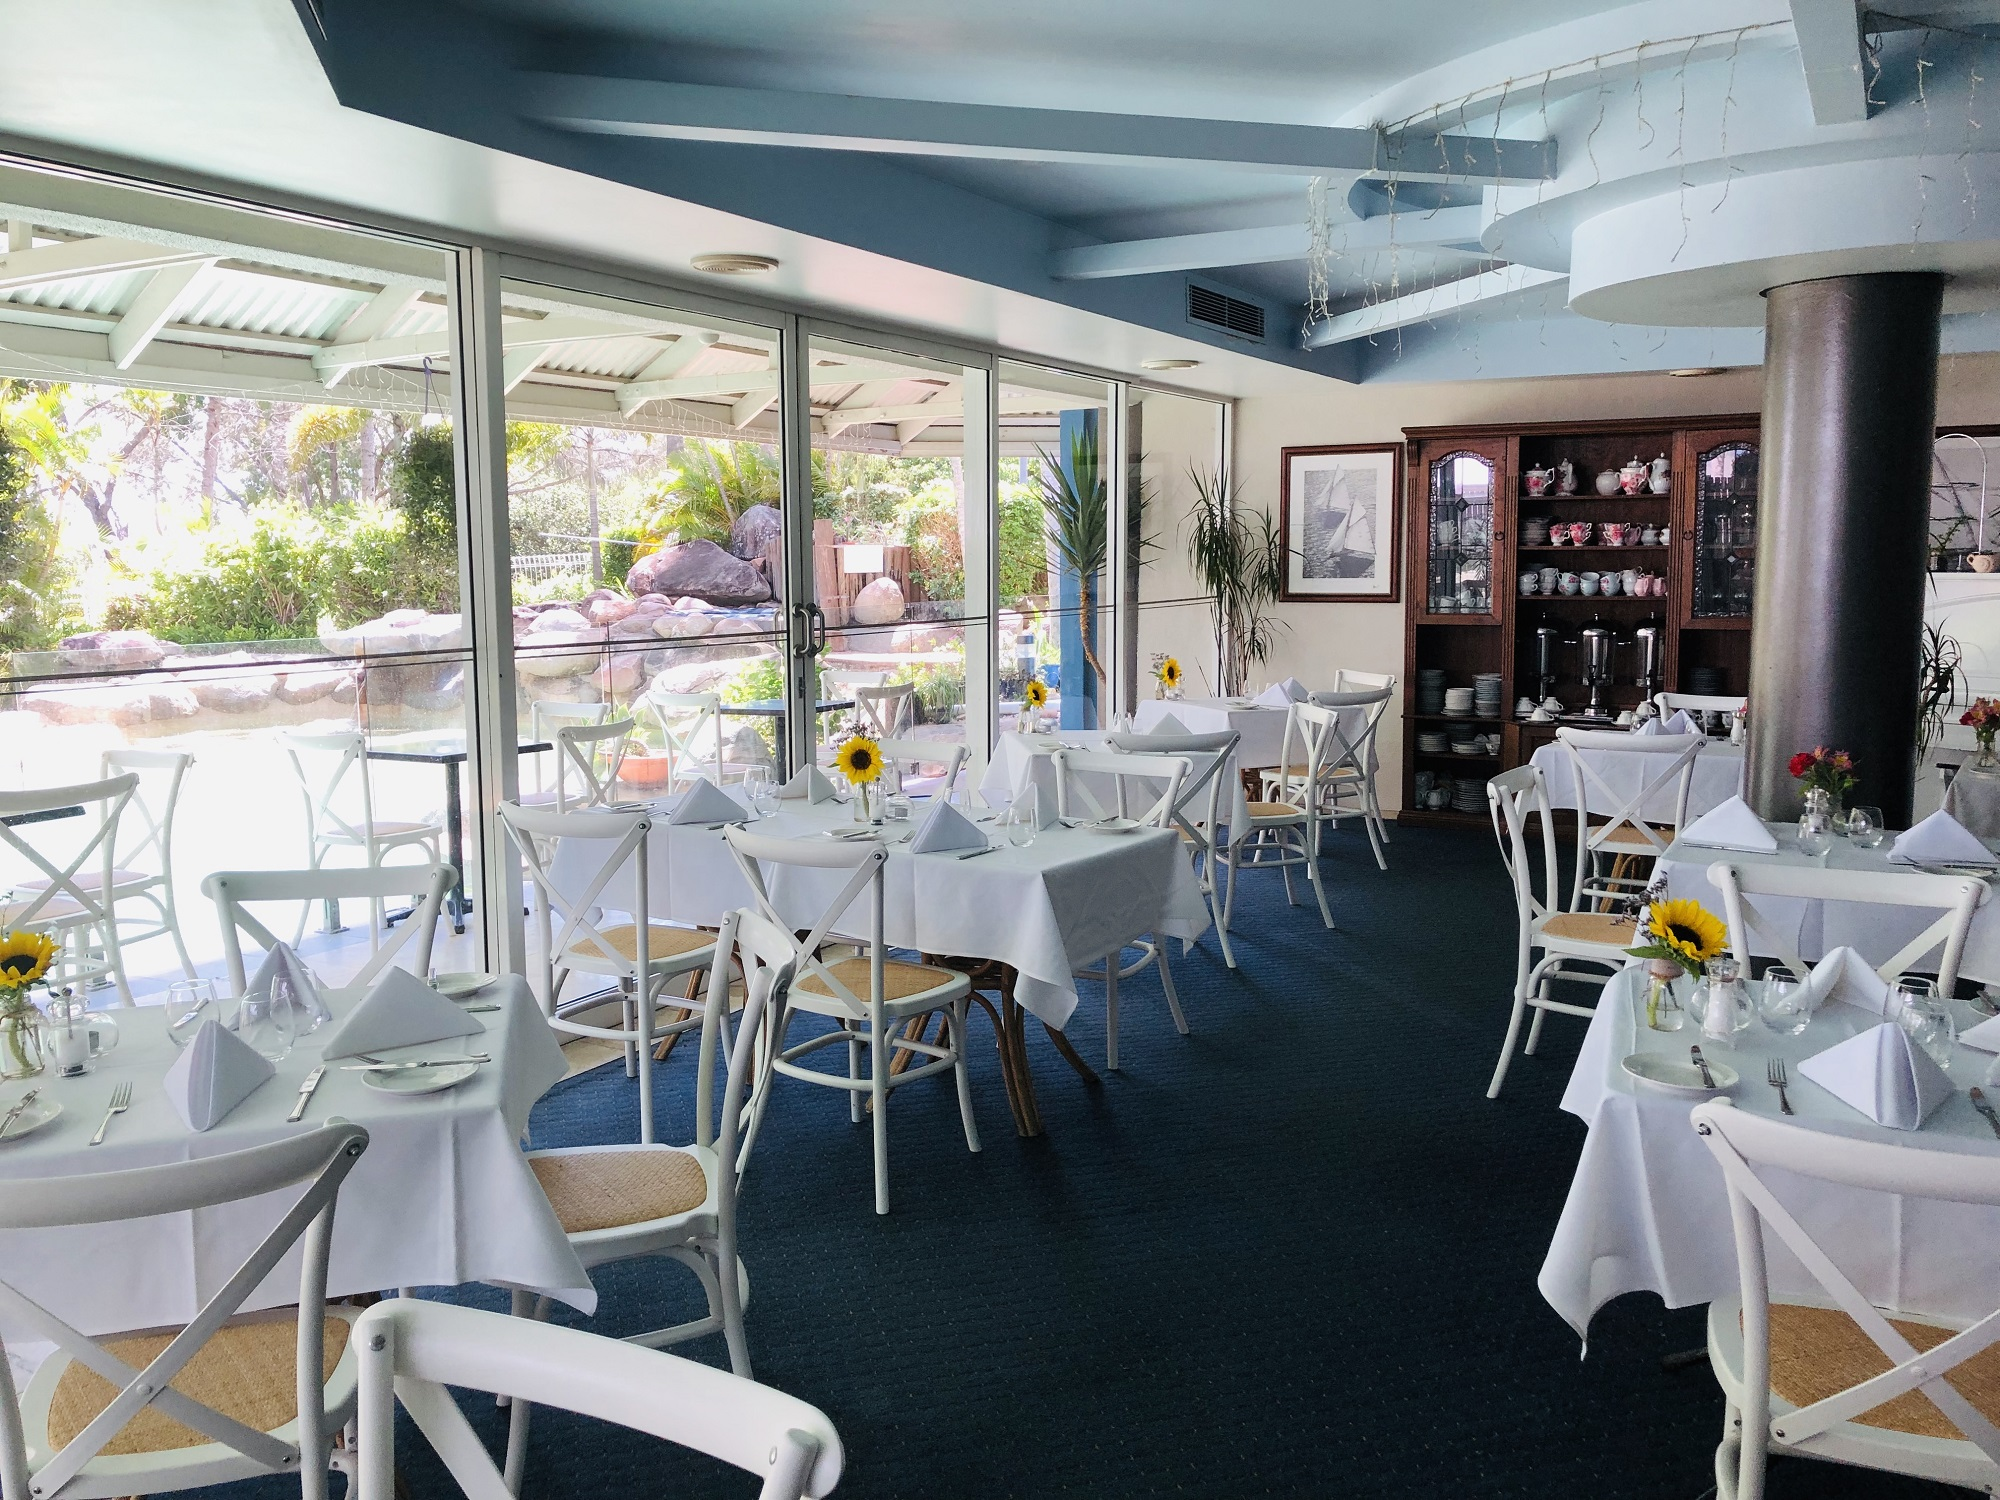 ocean international galleons restaurant